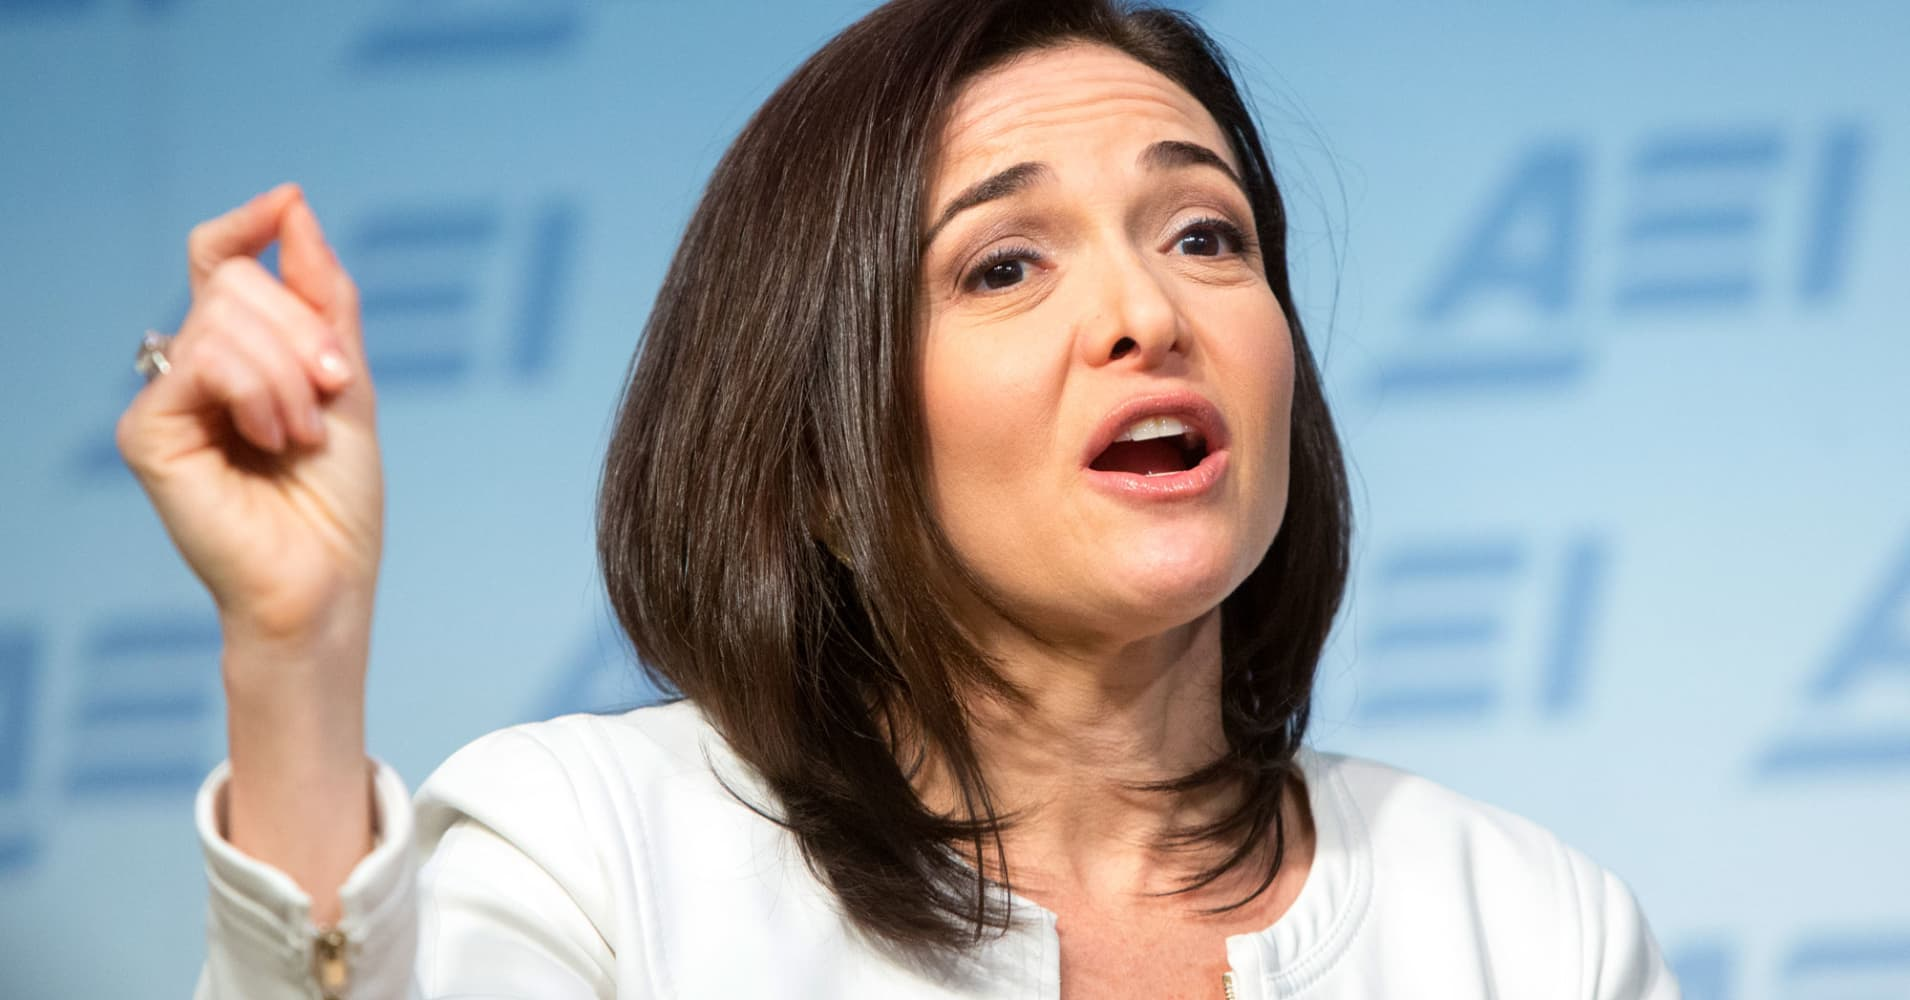 Facebook COO Sheryl Sandberg Speaks at Va. Tech Commencement